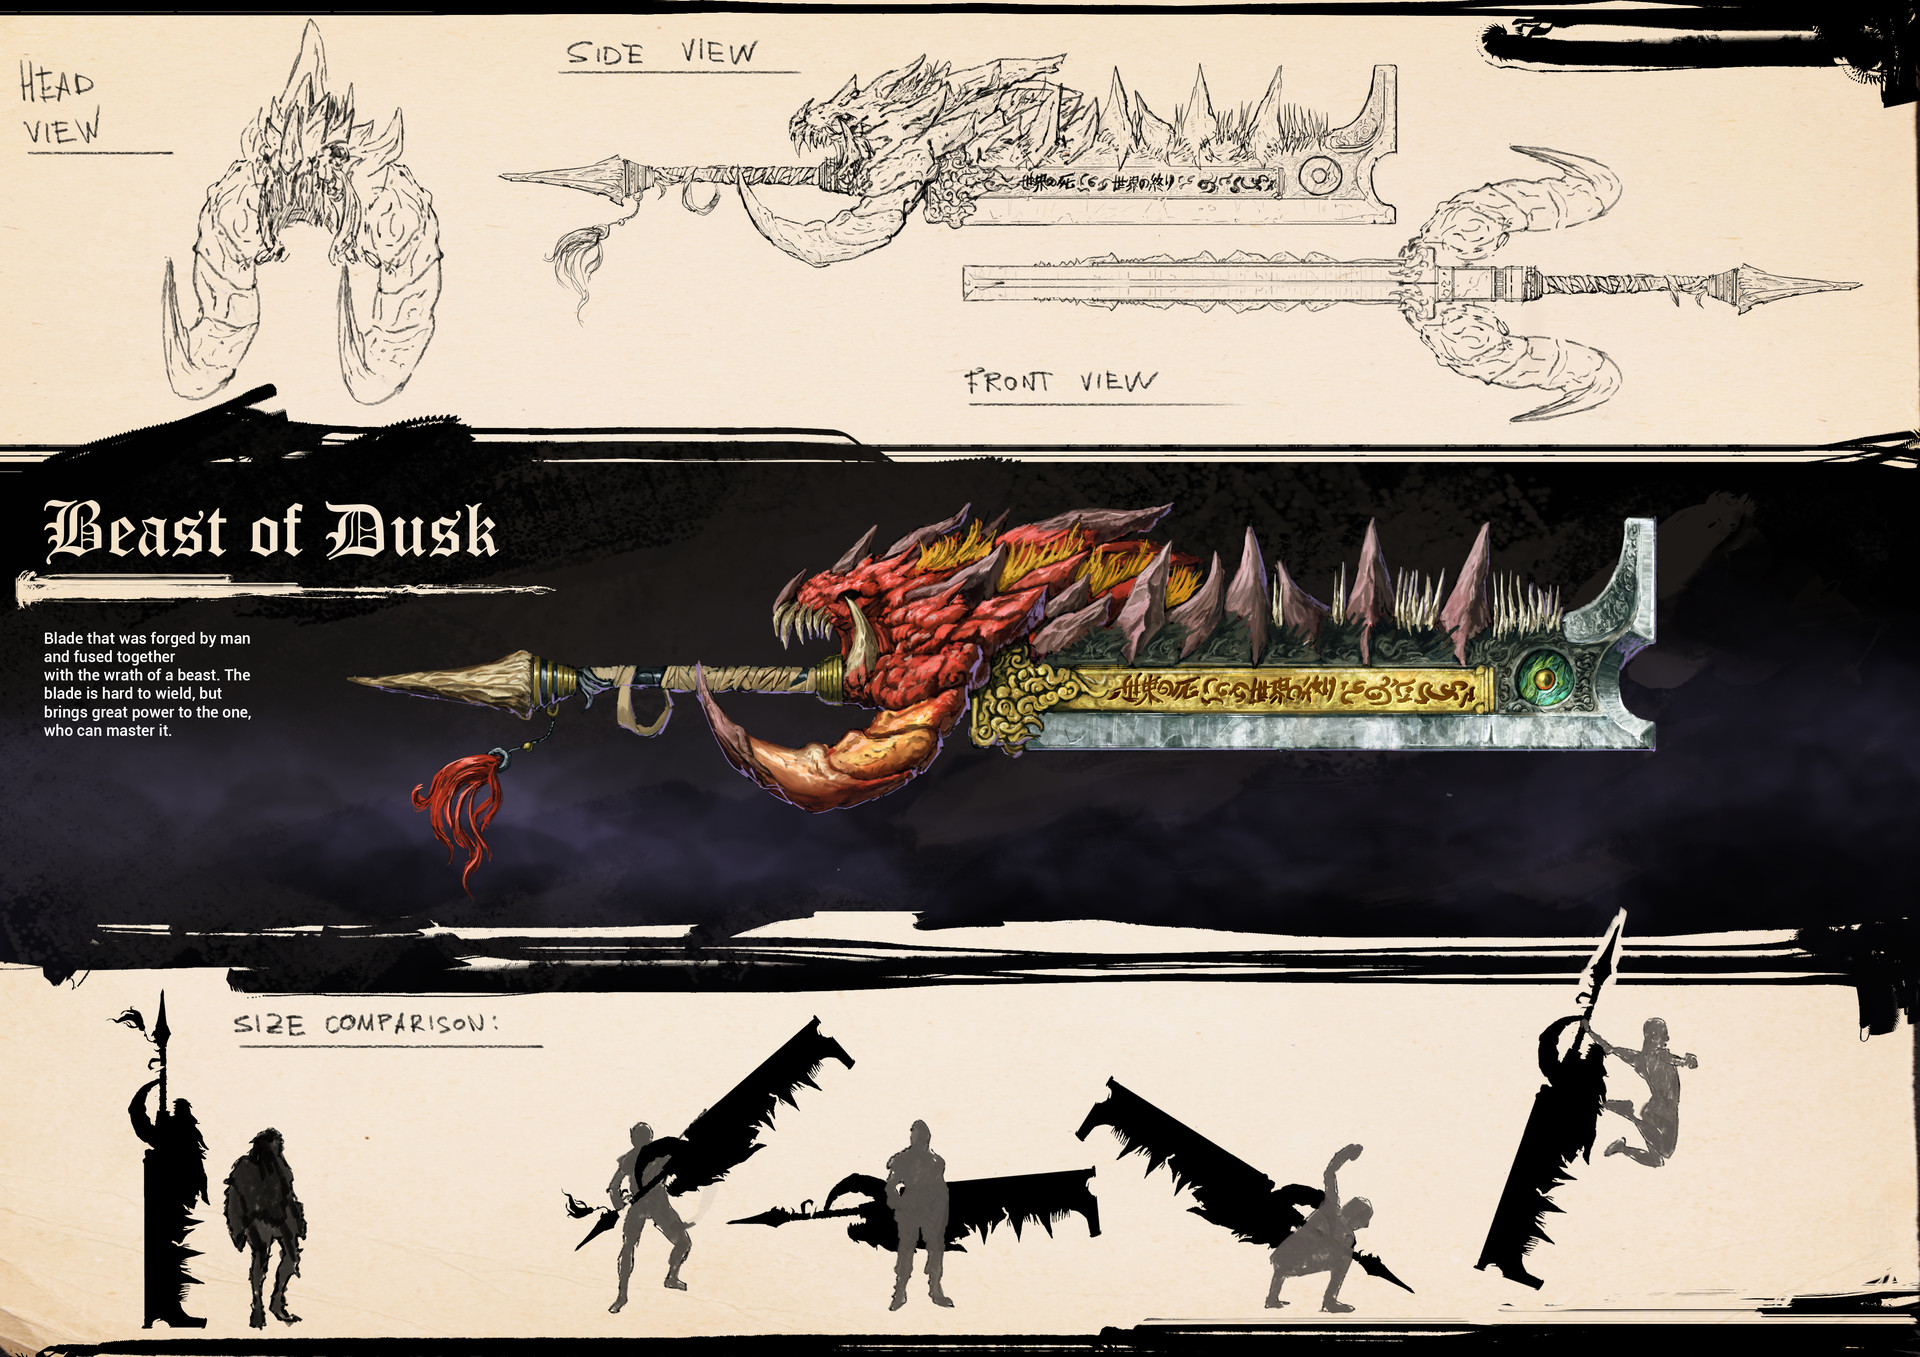 Konrx langa mhworld weapon design